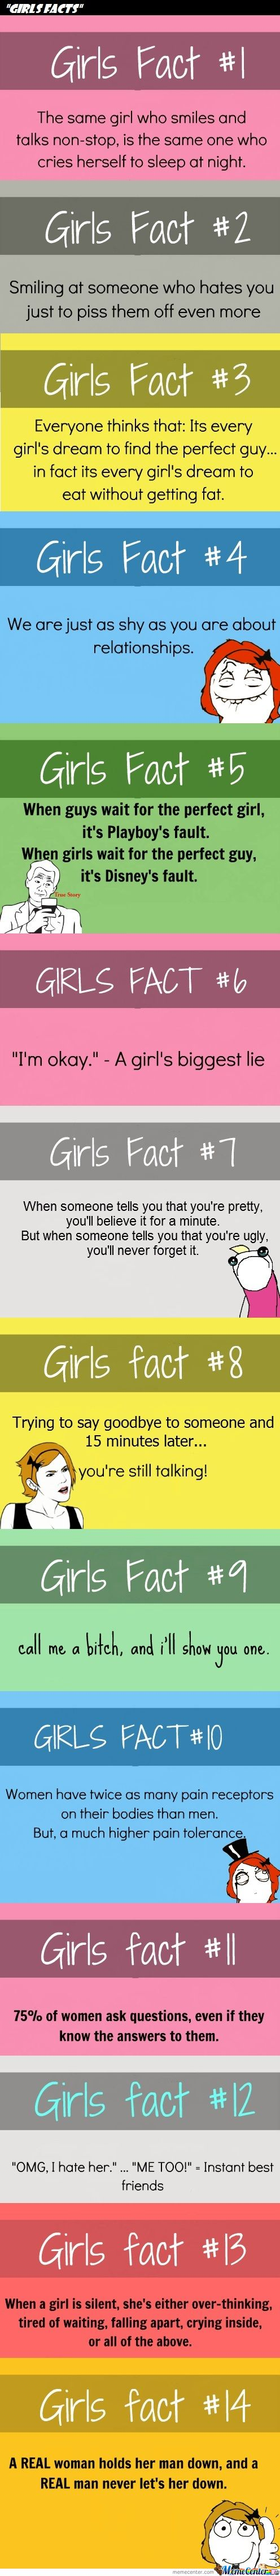 Some Girls Facts For You